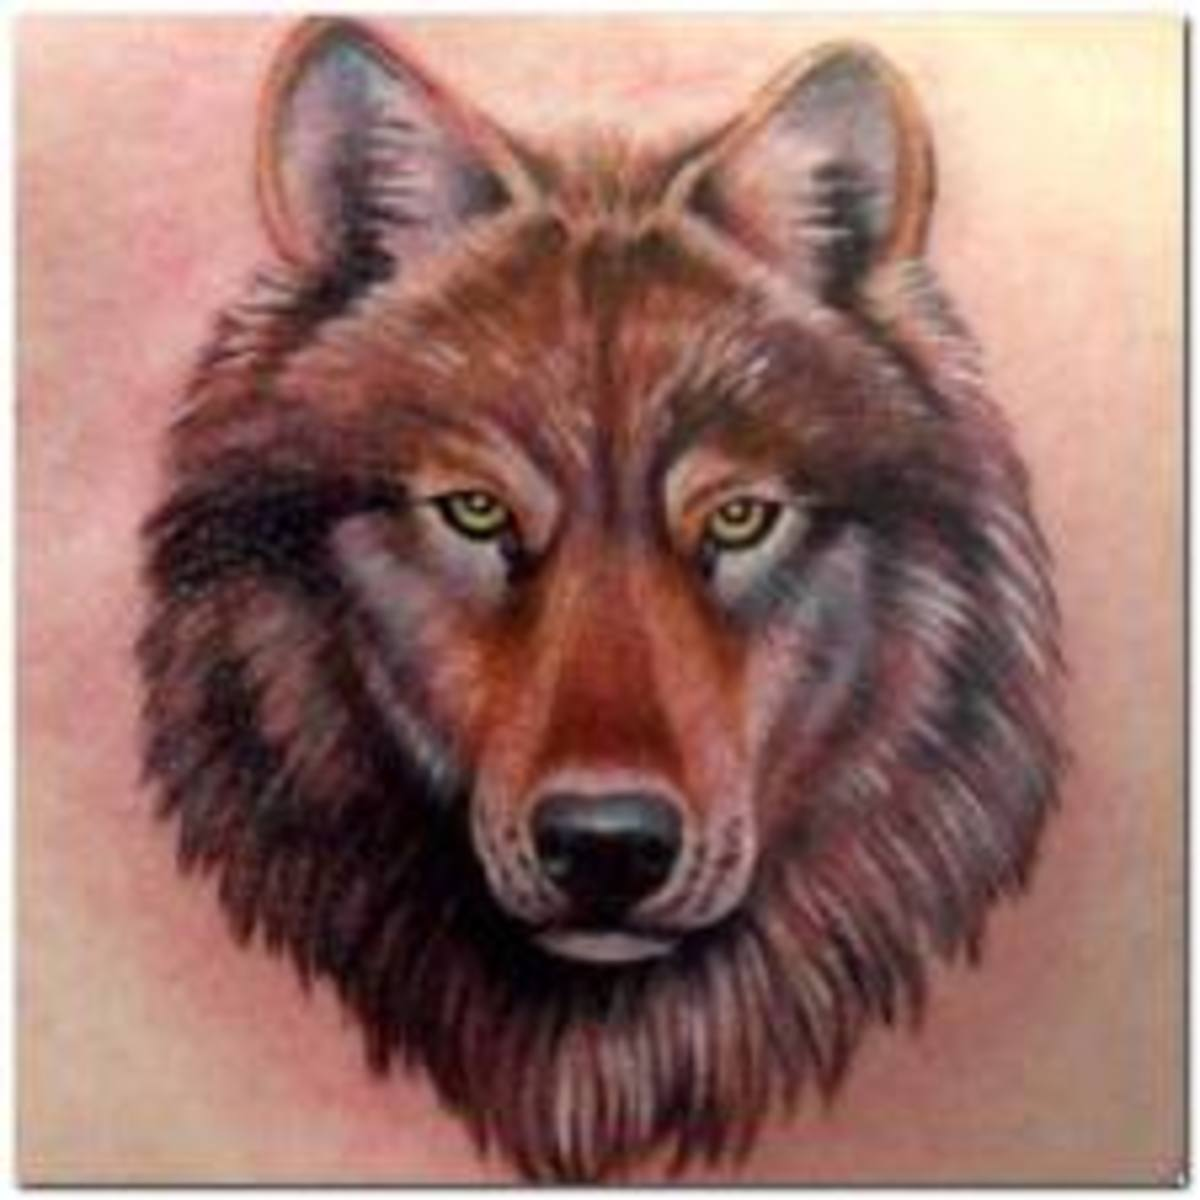 Wolf Tattoos Designs Ideas And Meaning: Wolf Tattoos: Designs, Ideas, And Meanings